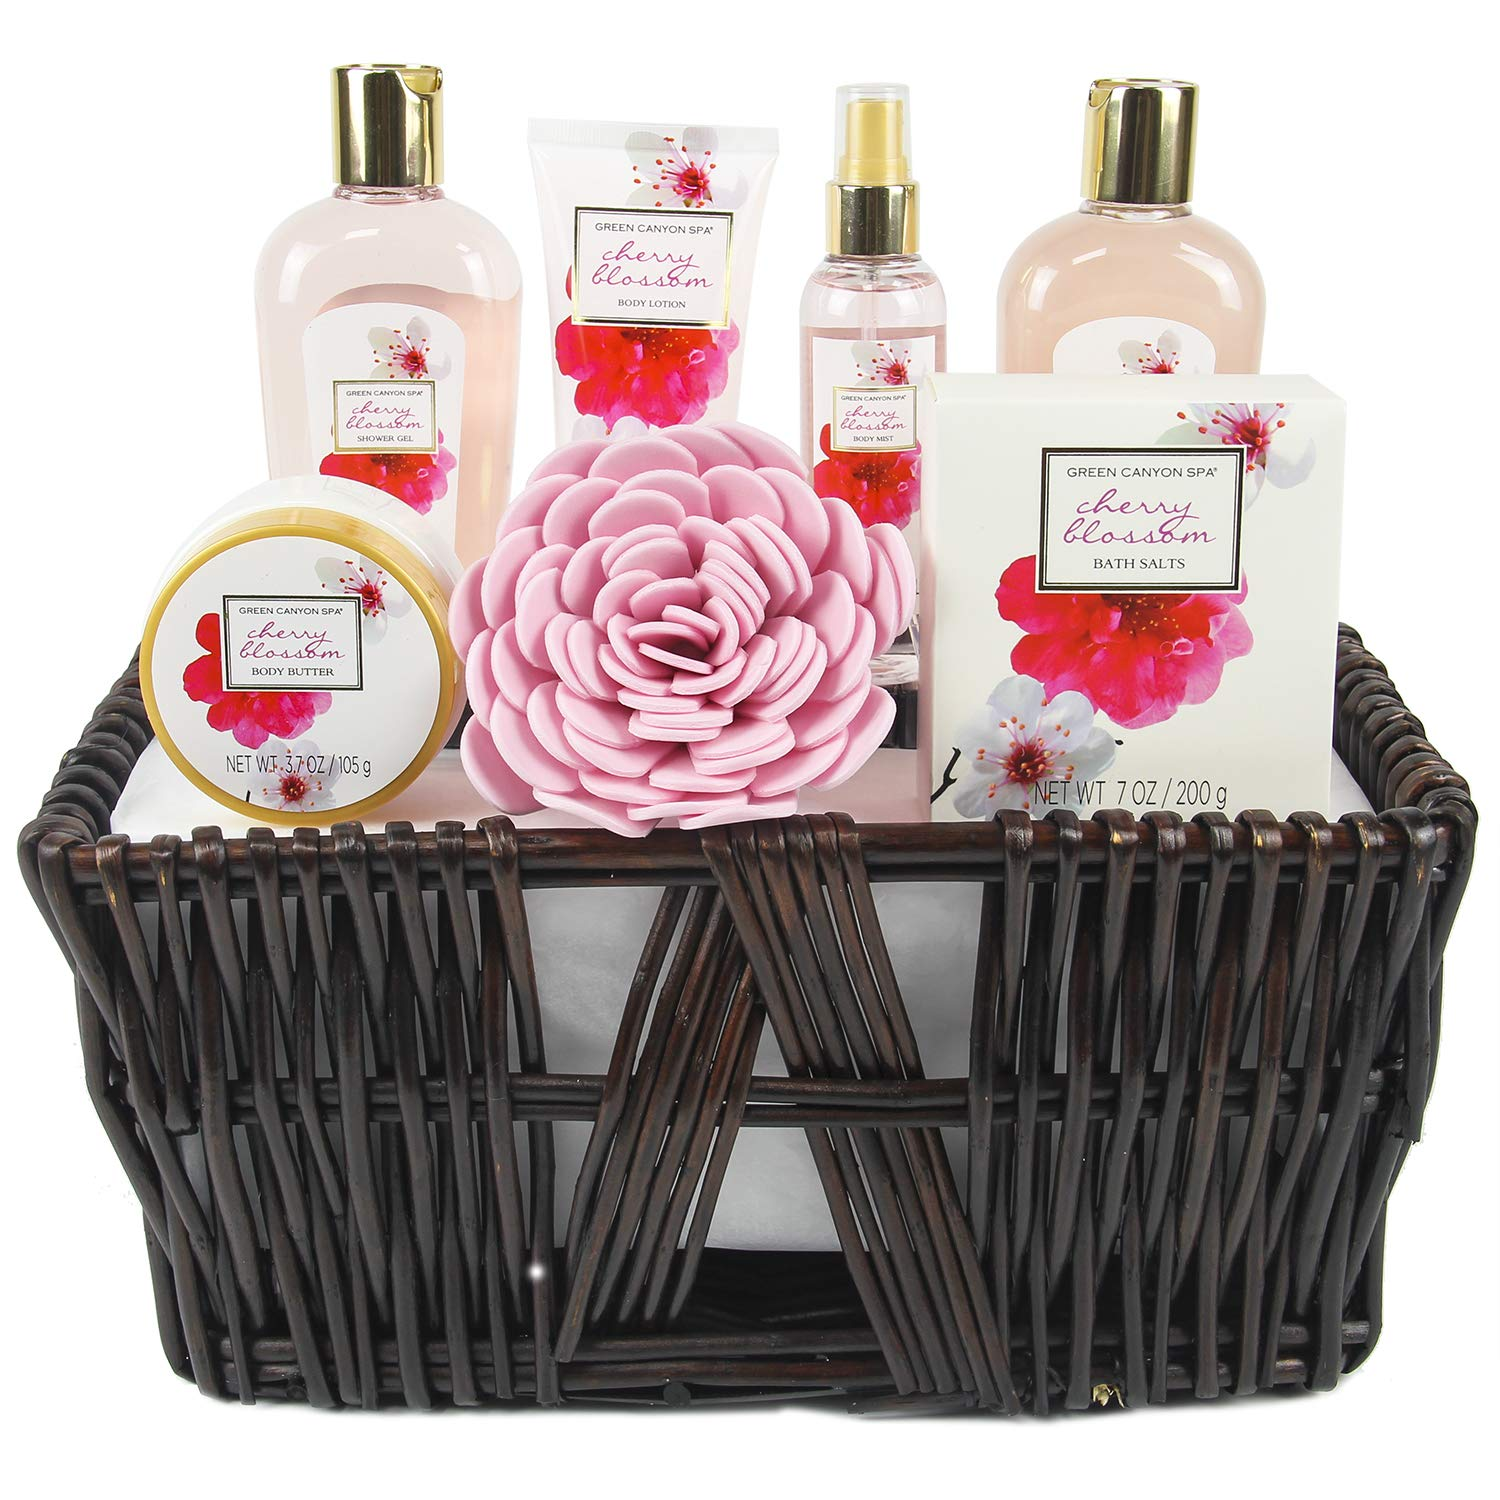 Green Canyon Spa Gift Baskets for Women Spa Gift Sets 8 Pcs Cherry Blossom Essential Oil Bath Set with Handmade Weaved Basket by GREEN CANYON SPA